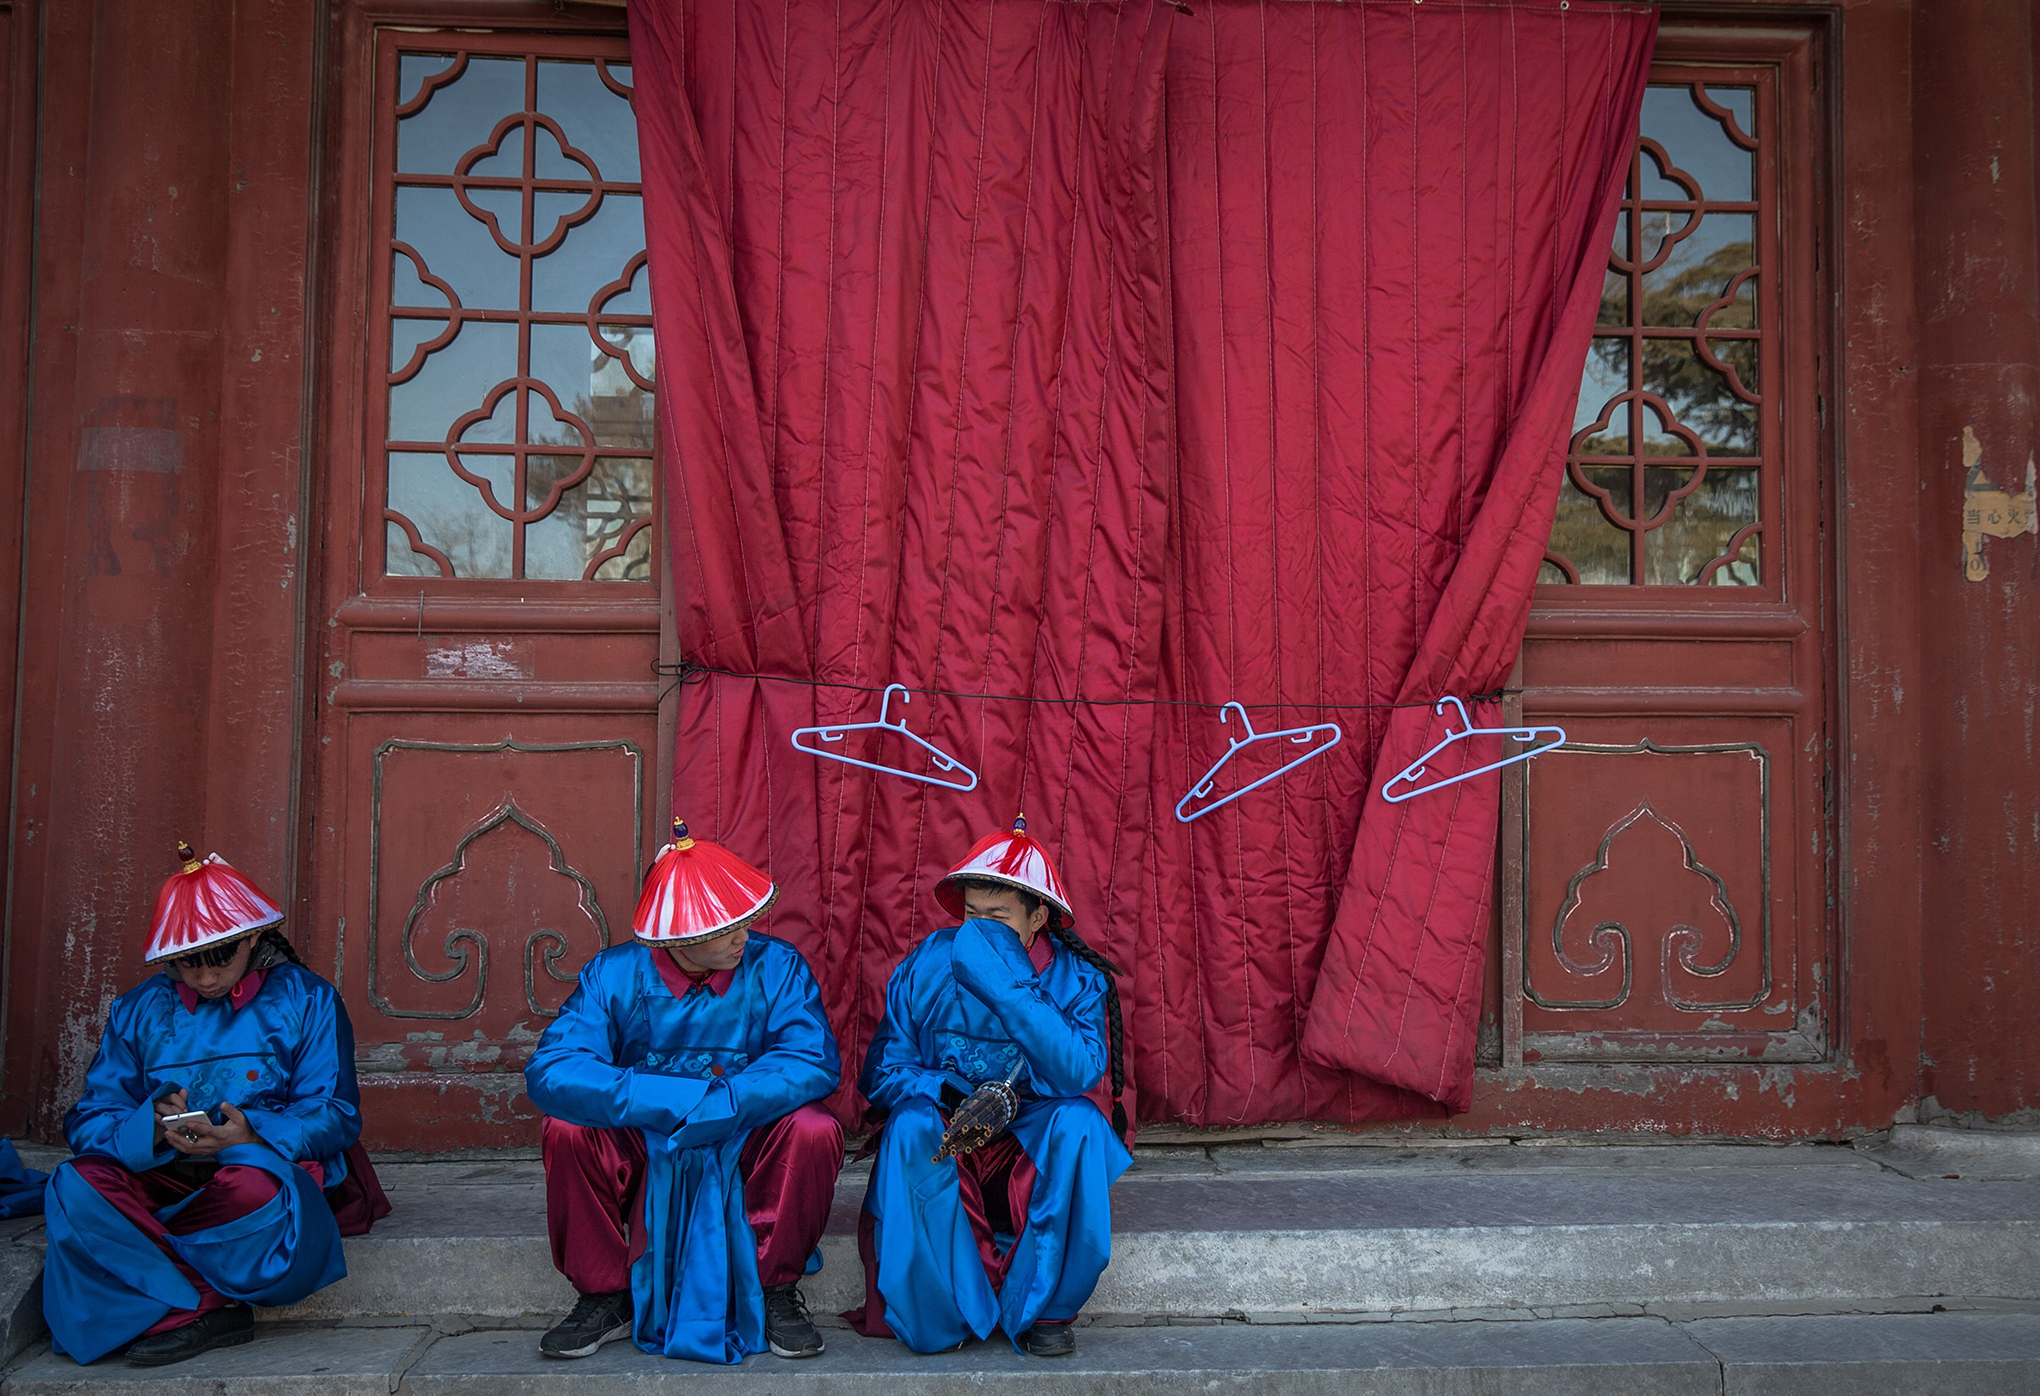 Chinese performers dressed in traditional costumes rest as they attend a rehearsal of a reenactment of a Qing Dynasty imperial sacrifice ritual to worship the Earth, on the eve of the Chinese Lunar New Year, at Ditan Park in Beijing, Feb. 15, 2018.